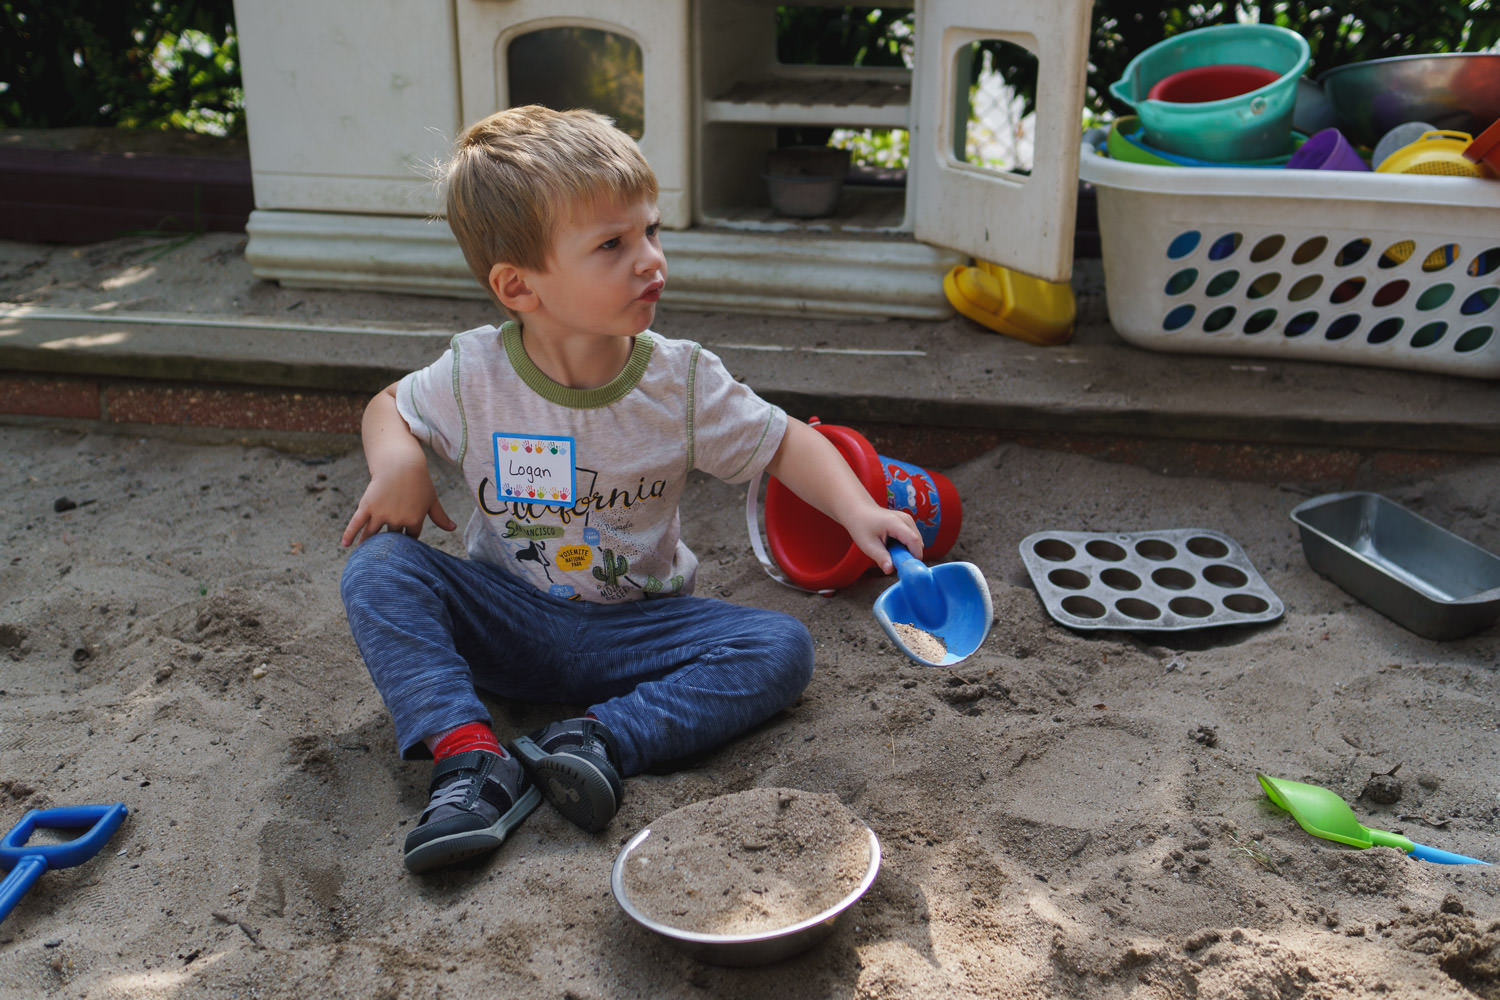 A little boy plays in a sandbox at preschool.